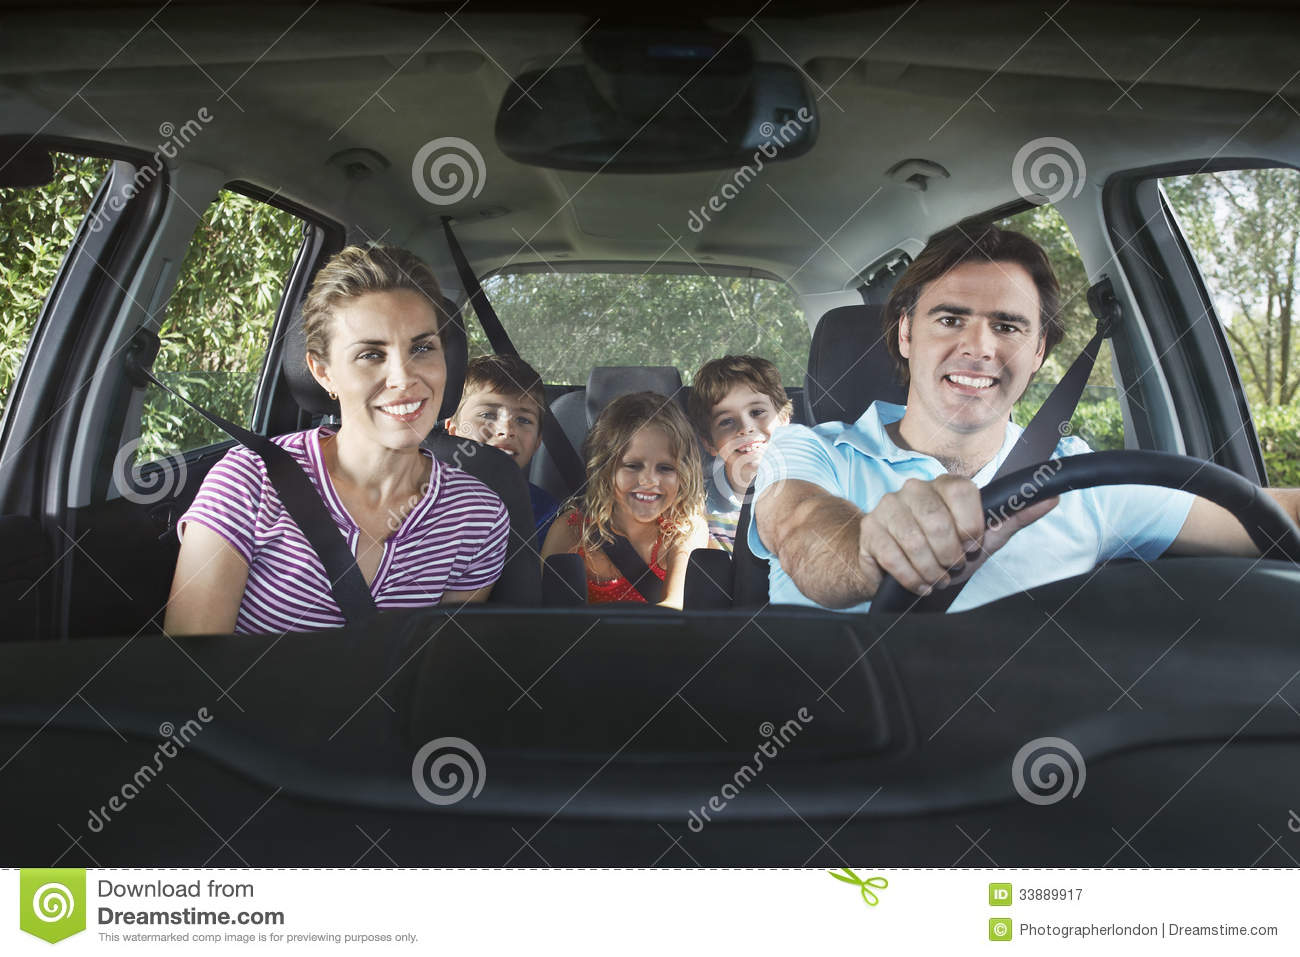 Royalty Free Stock Photography Happy Family Car Portrait Smiling Couple Three Children Image33889917 on man opening car door